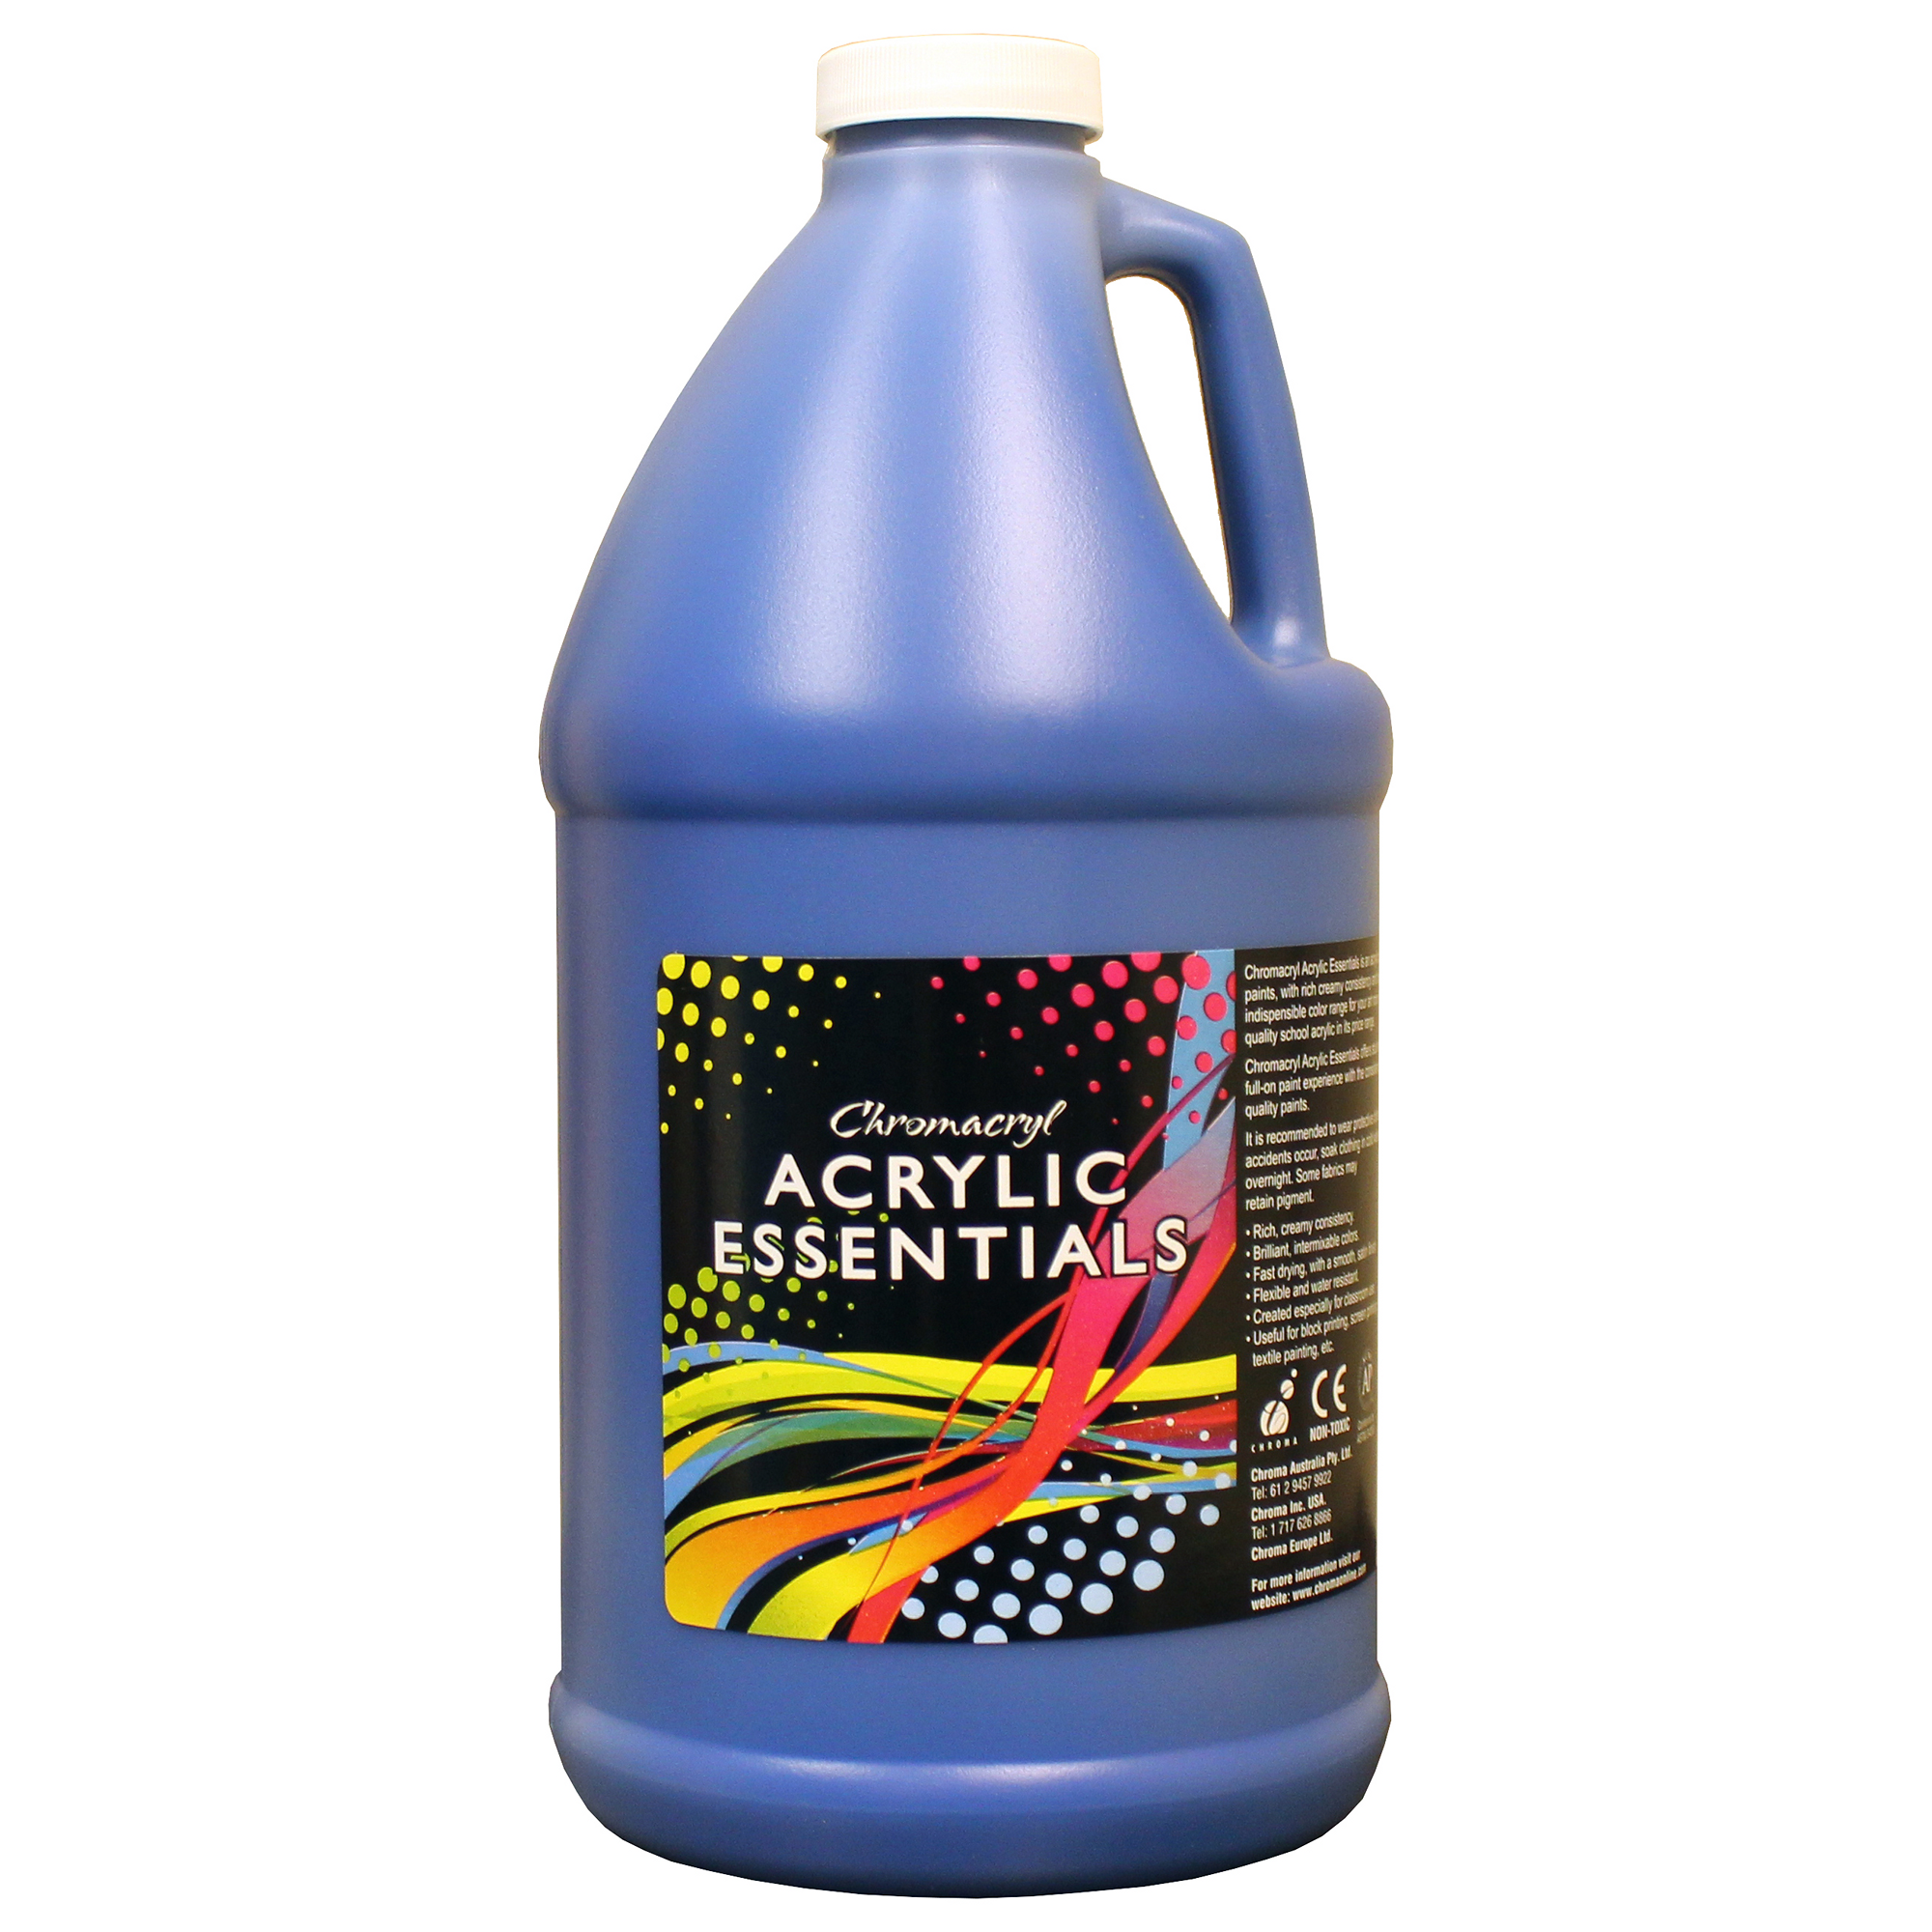 Hc421661 Chromacryl Acrylic Essentials Acrylic Paint In Cool Blue 2 Litre Bottle Findel International